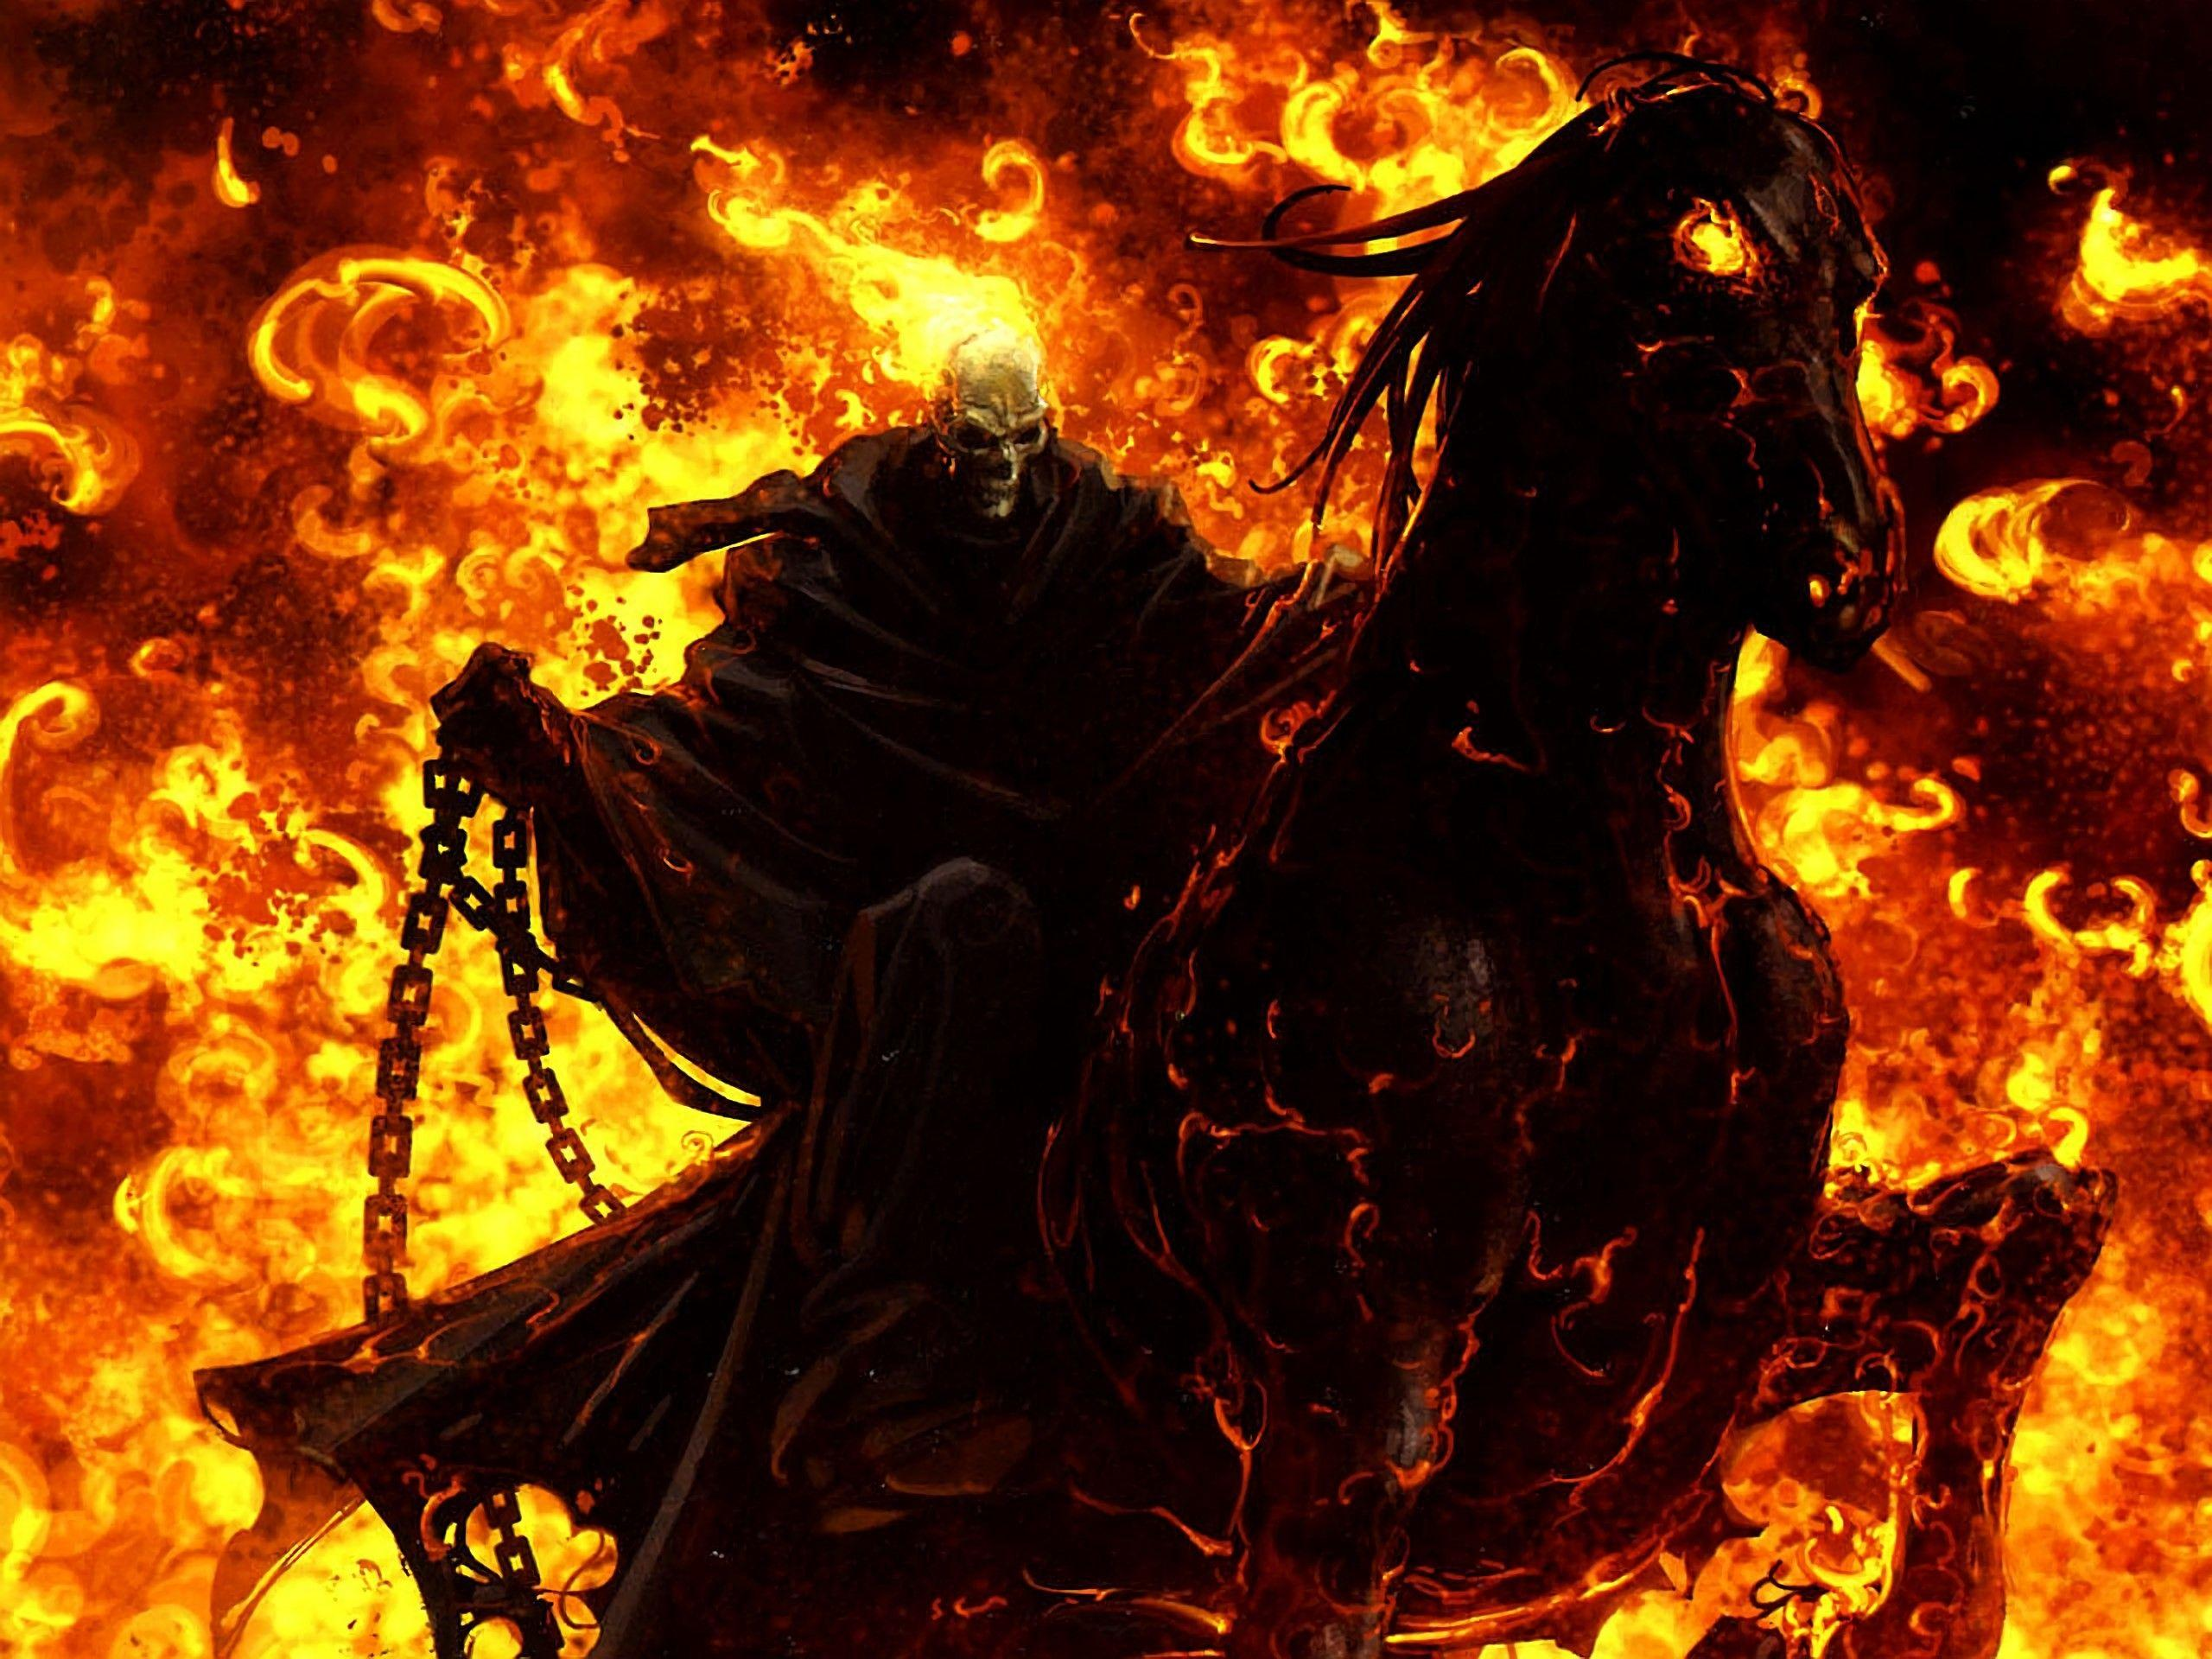 Ghost Rider Wallpapers For Phone